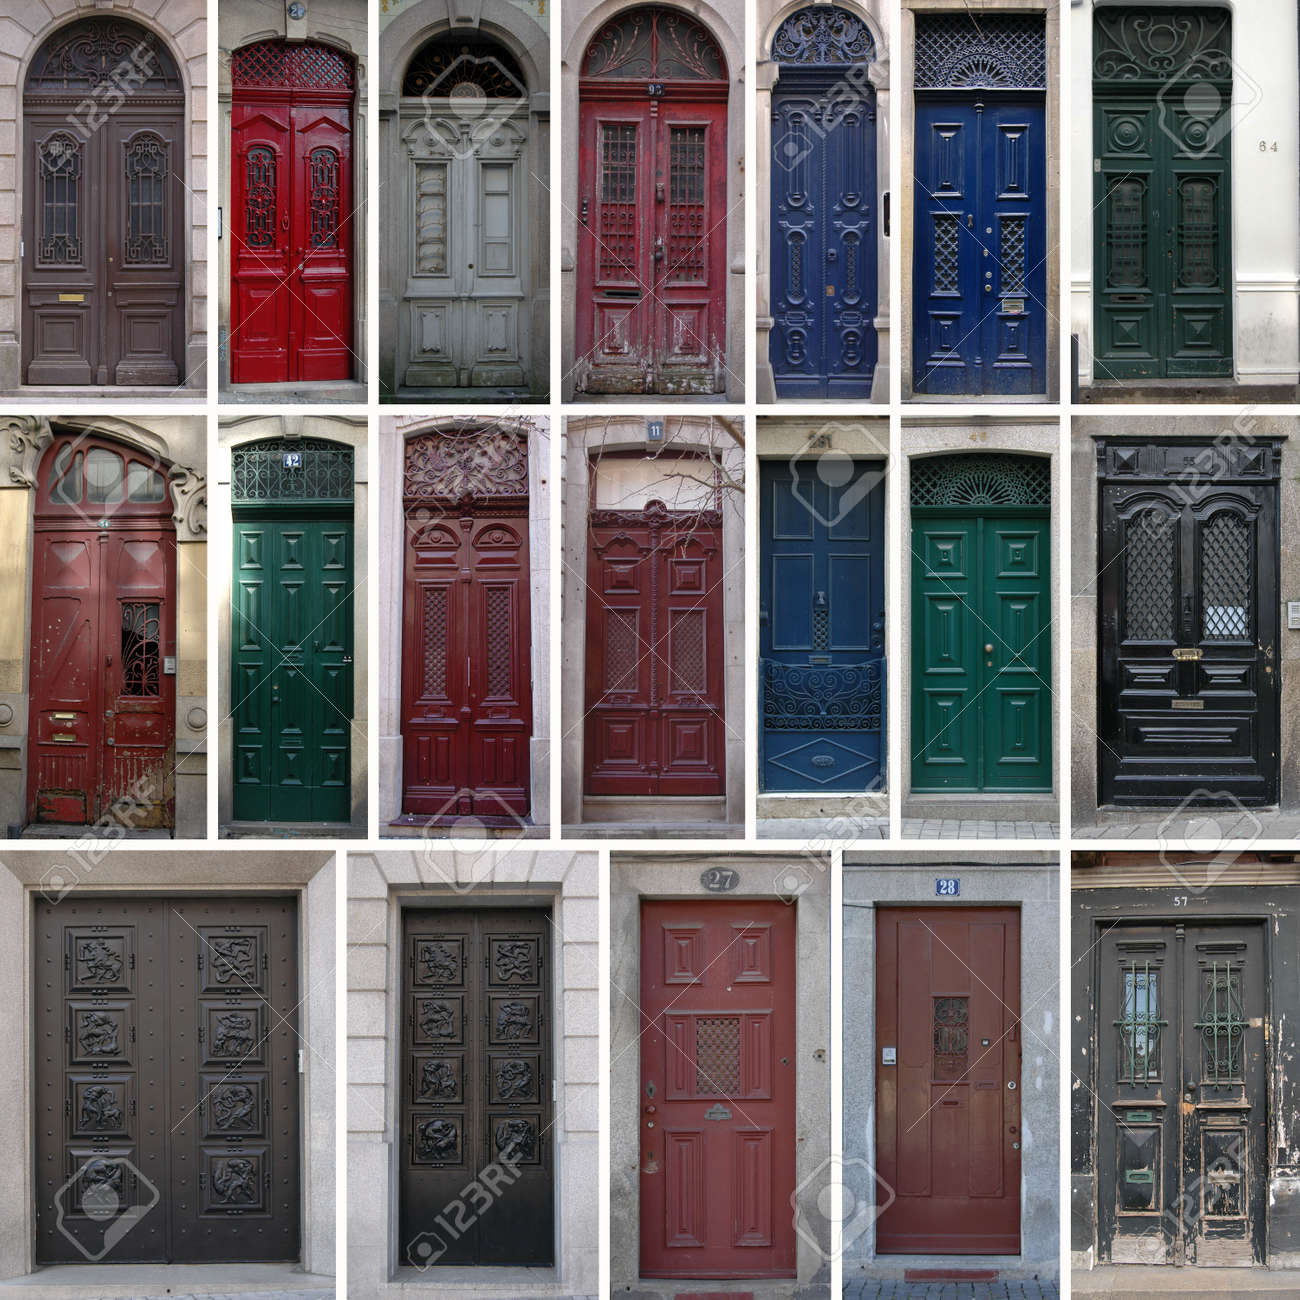 Set of 19 old doors of the city of Porto Portugal. Stock Photo - & Set Of 19 Old Doors Of The City Of Porto Portugal. Stock Photo ... pezcame.com